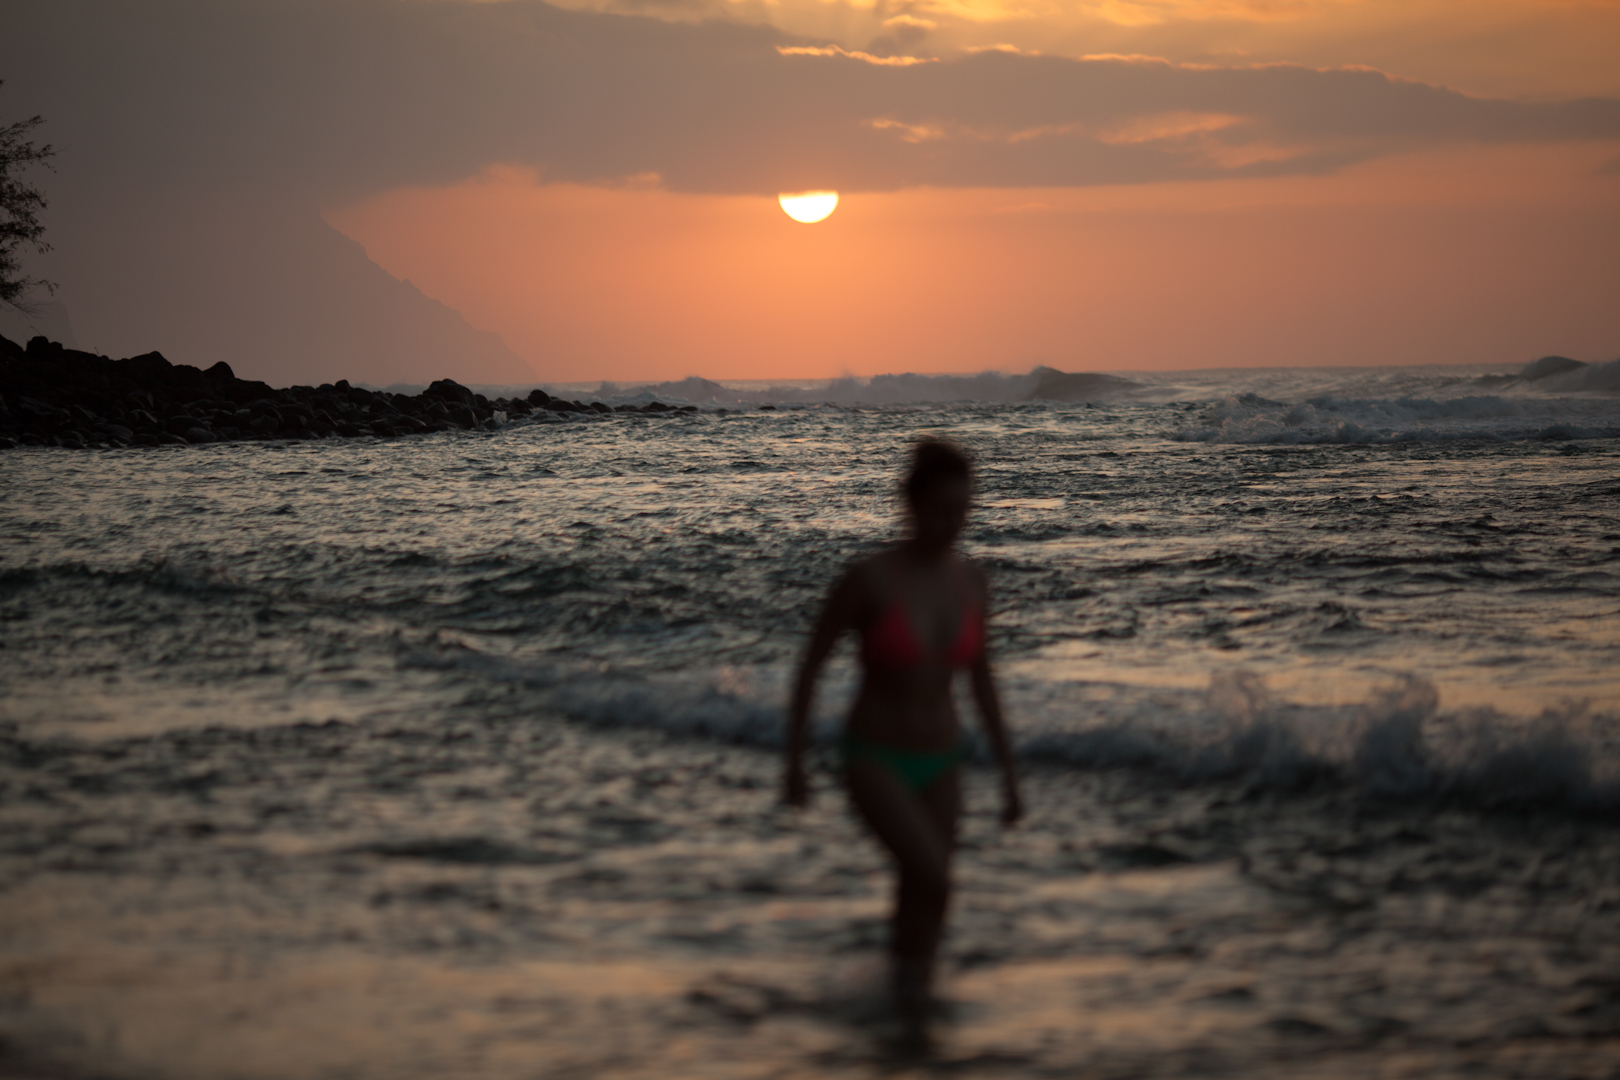 Katy in the sunset surf, Hawai.